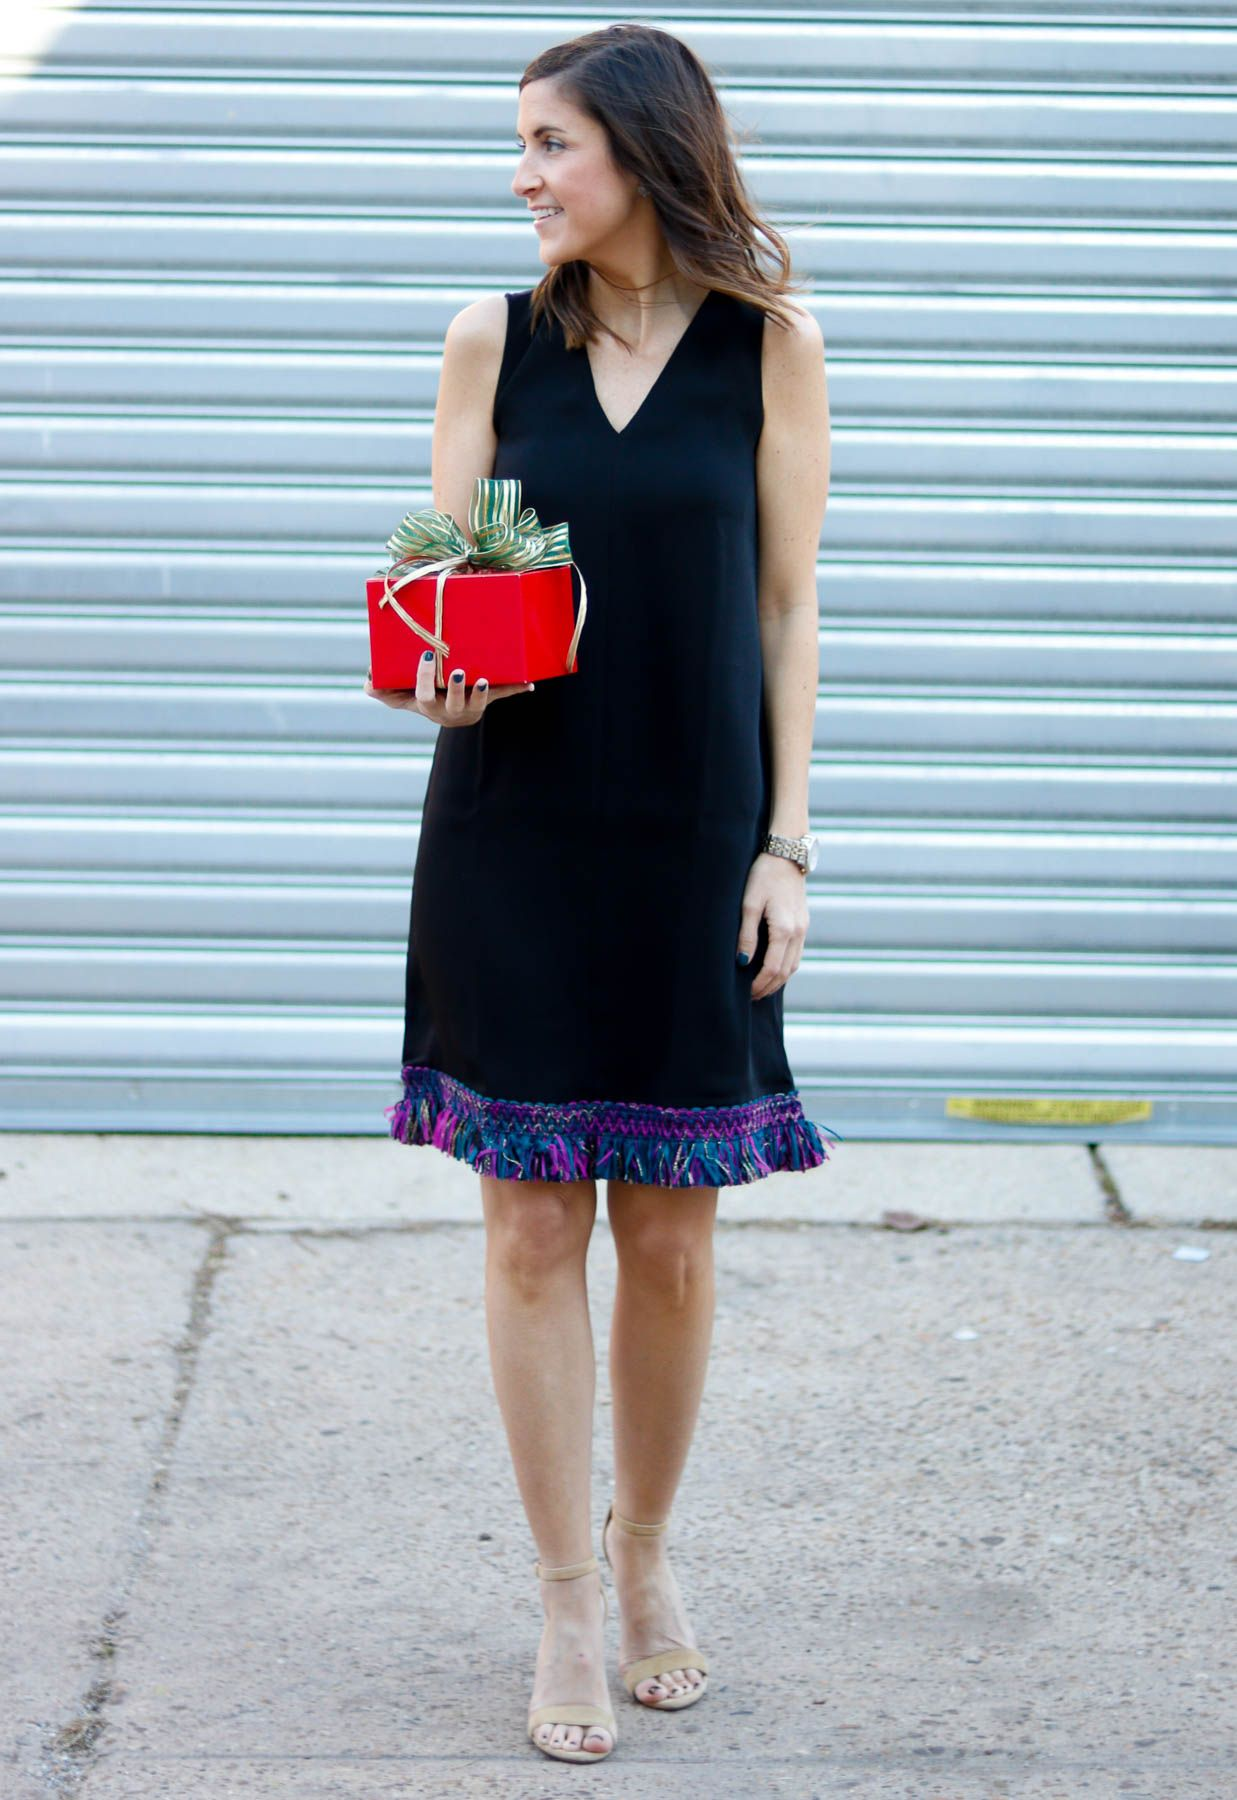 Versatile Holiday Party Dress | Pinterest fashion, Blogger style and ...